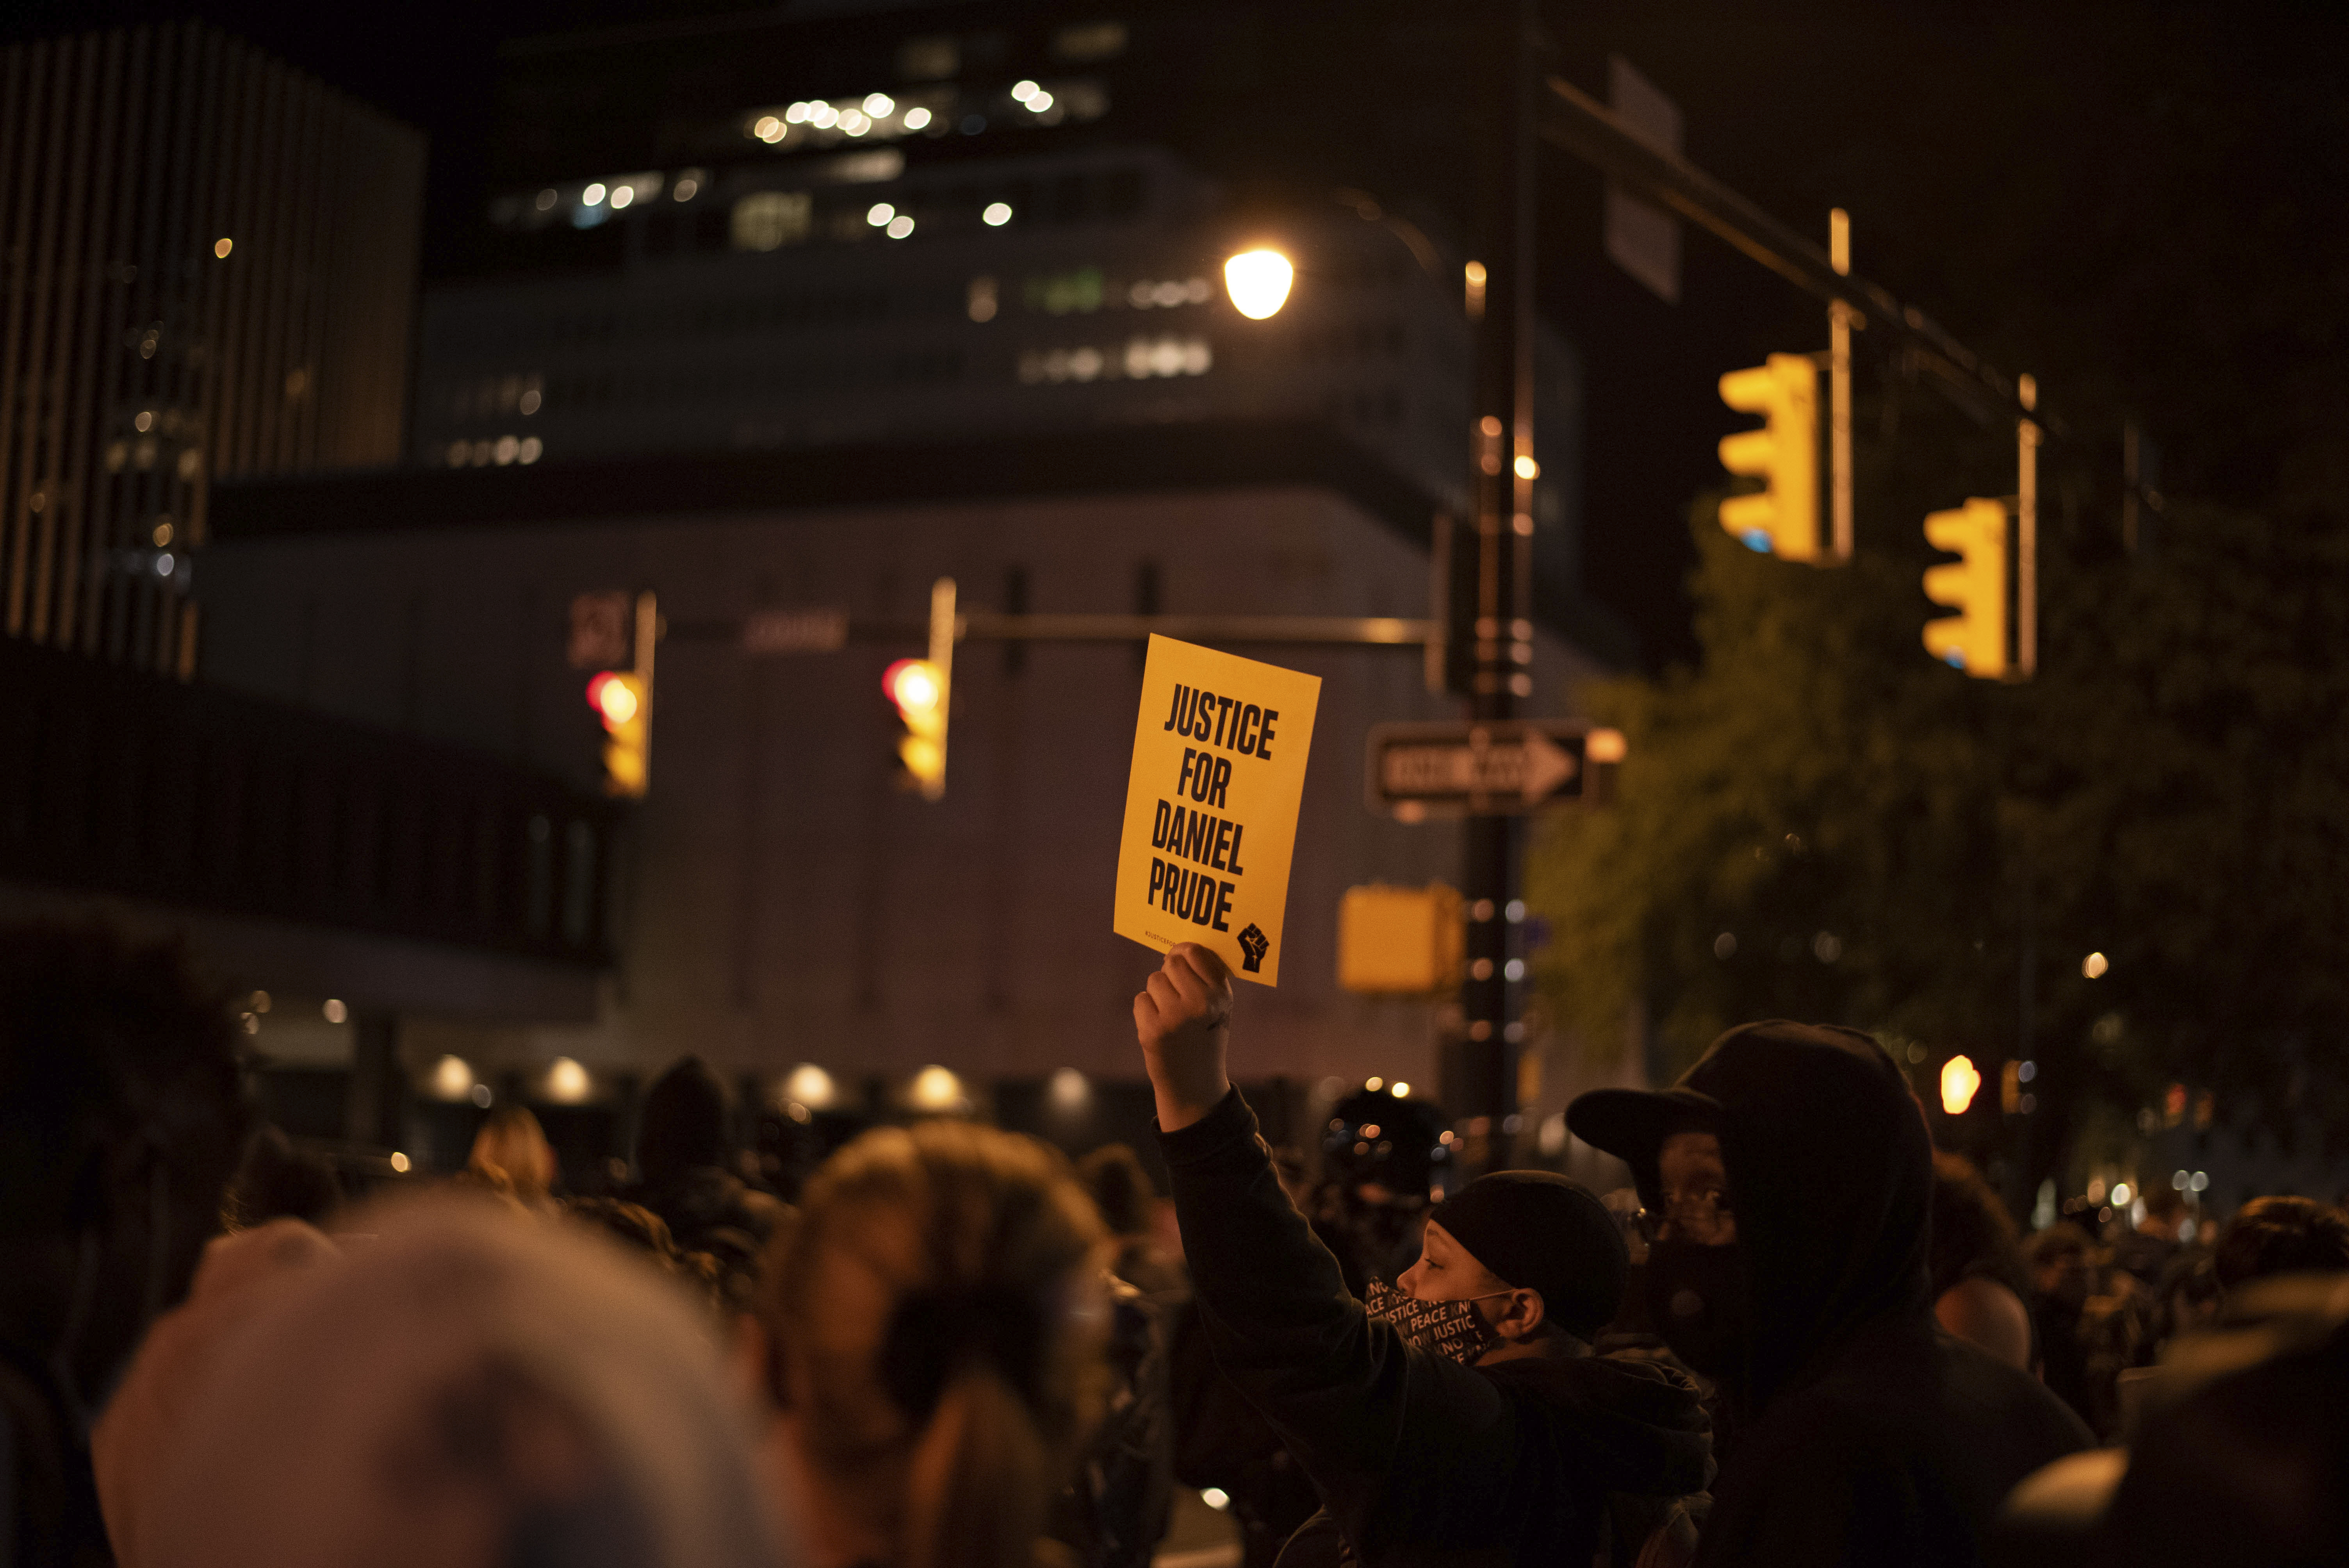 Hundreds showed up to protest the unlawful treatment of POC by police following the death of Daniel Prude who died in police custody March 23rd. Rochester, NY.